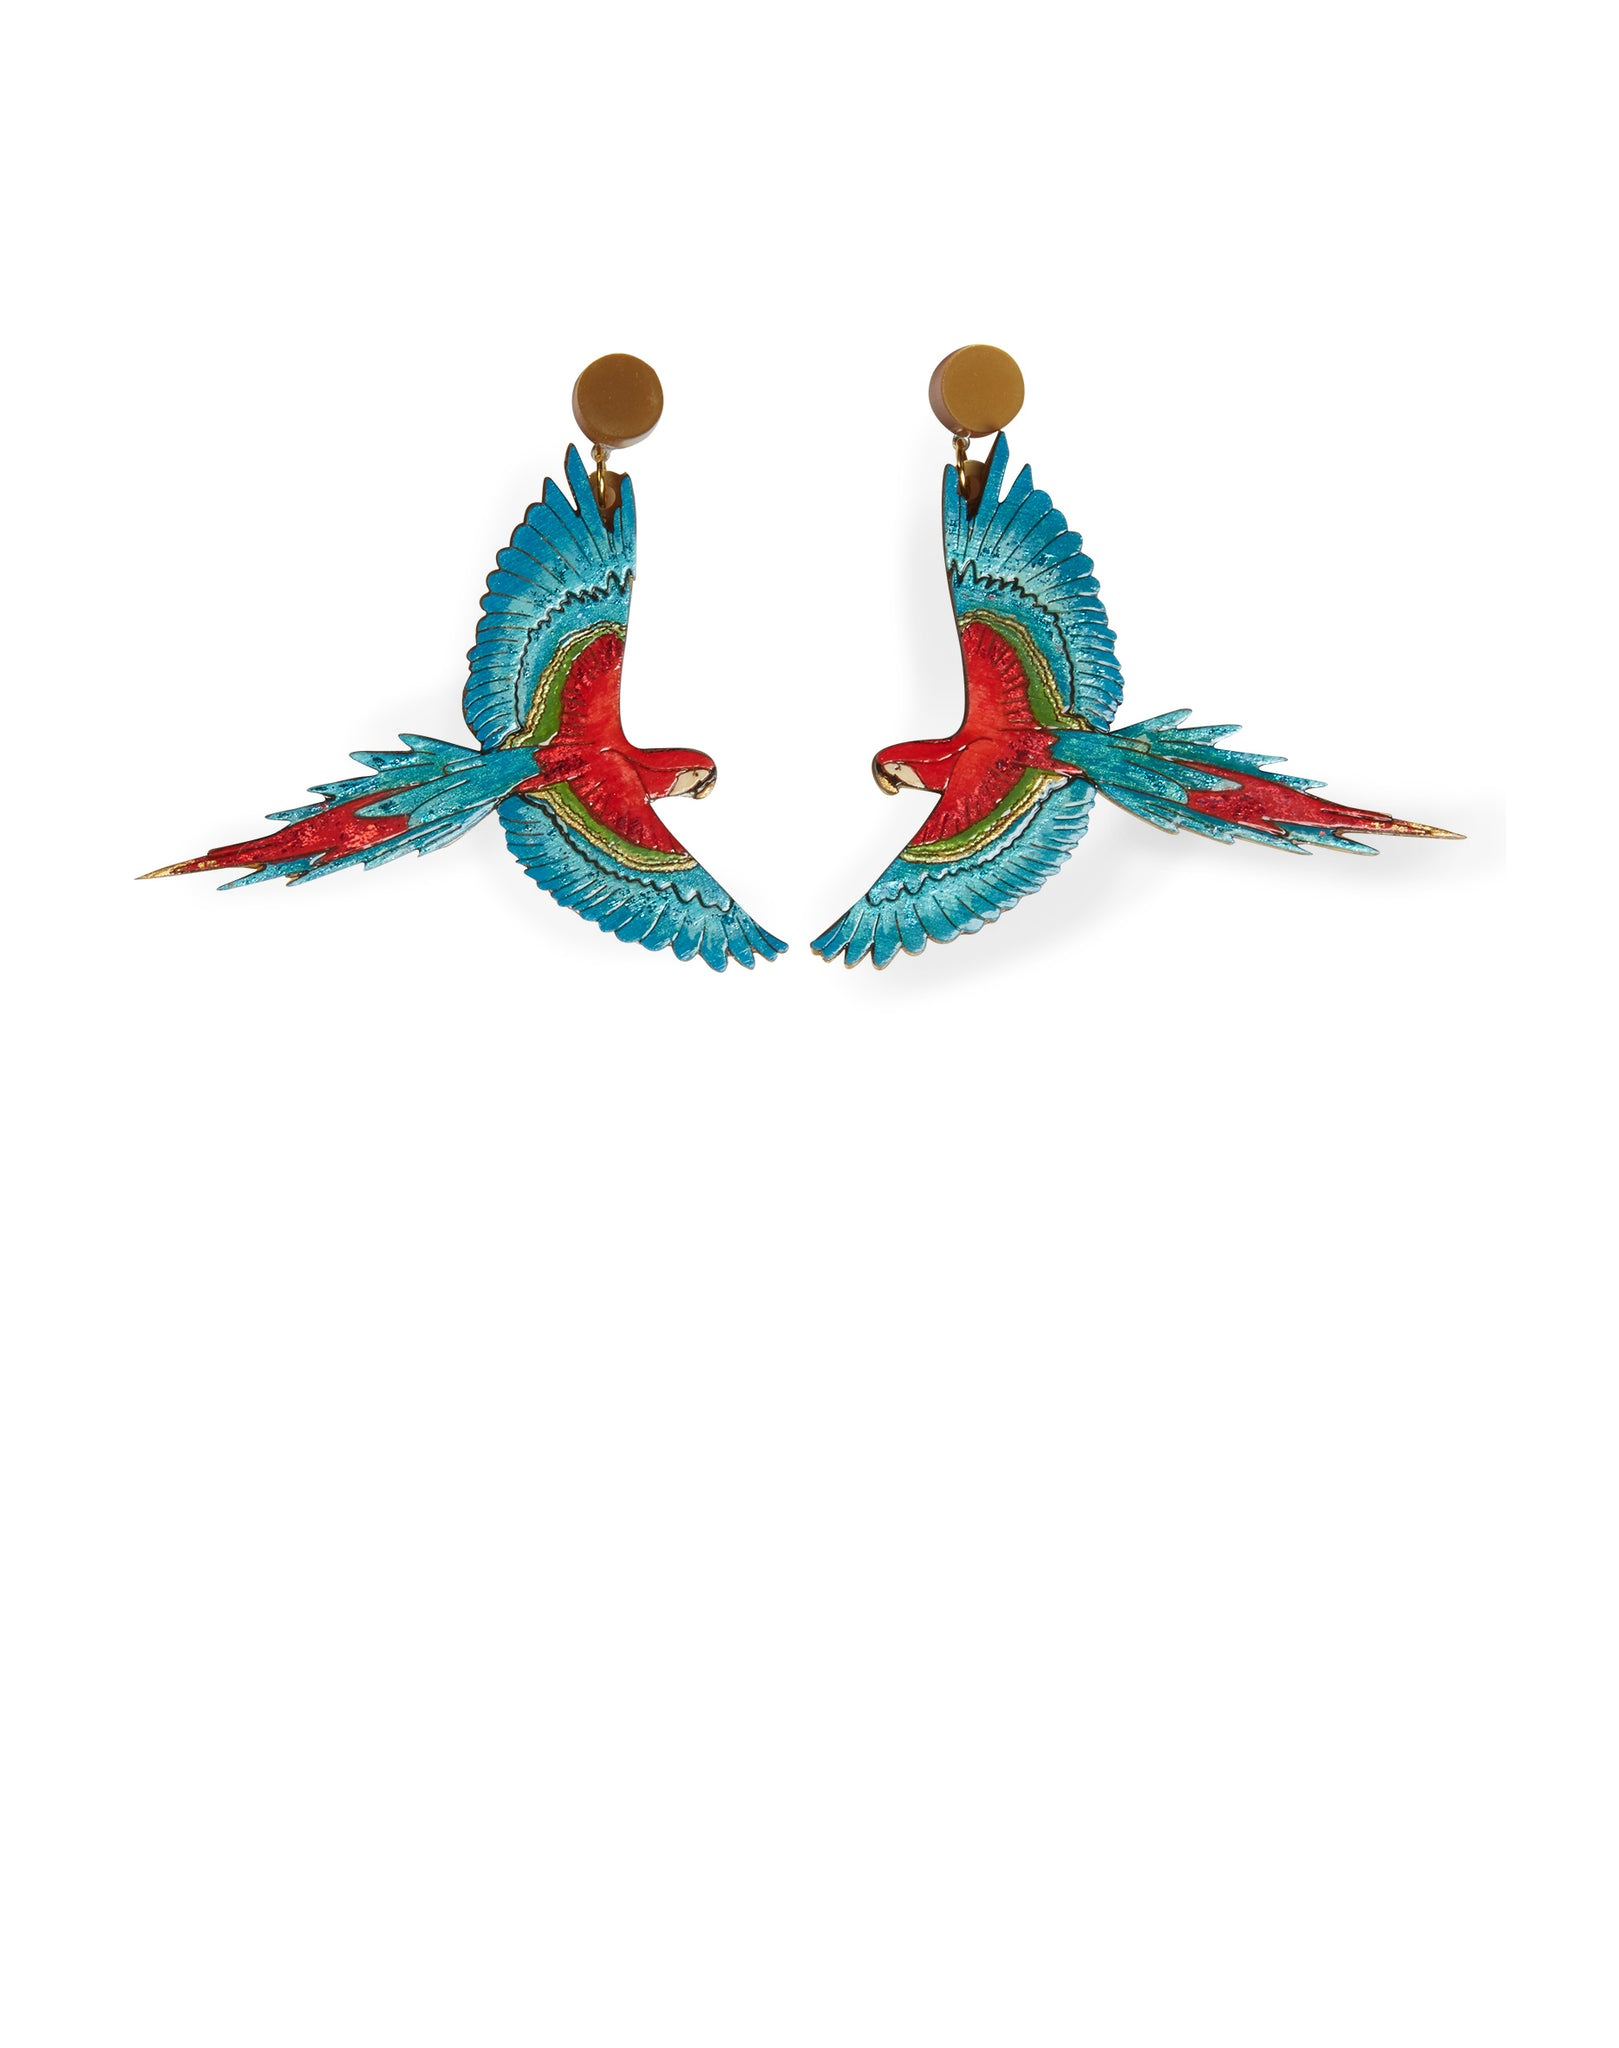 Parrot Laser-cut Acrylic Hand-painted British-made Retro Earrings